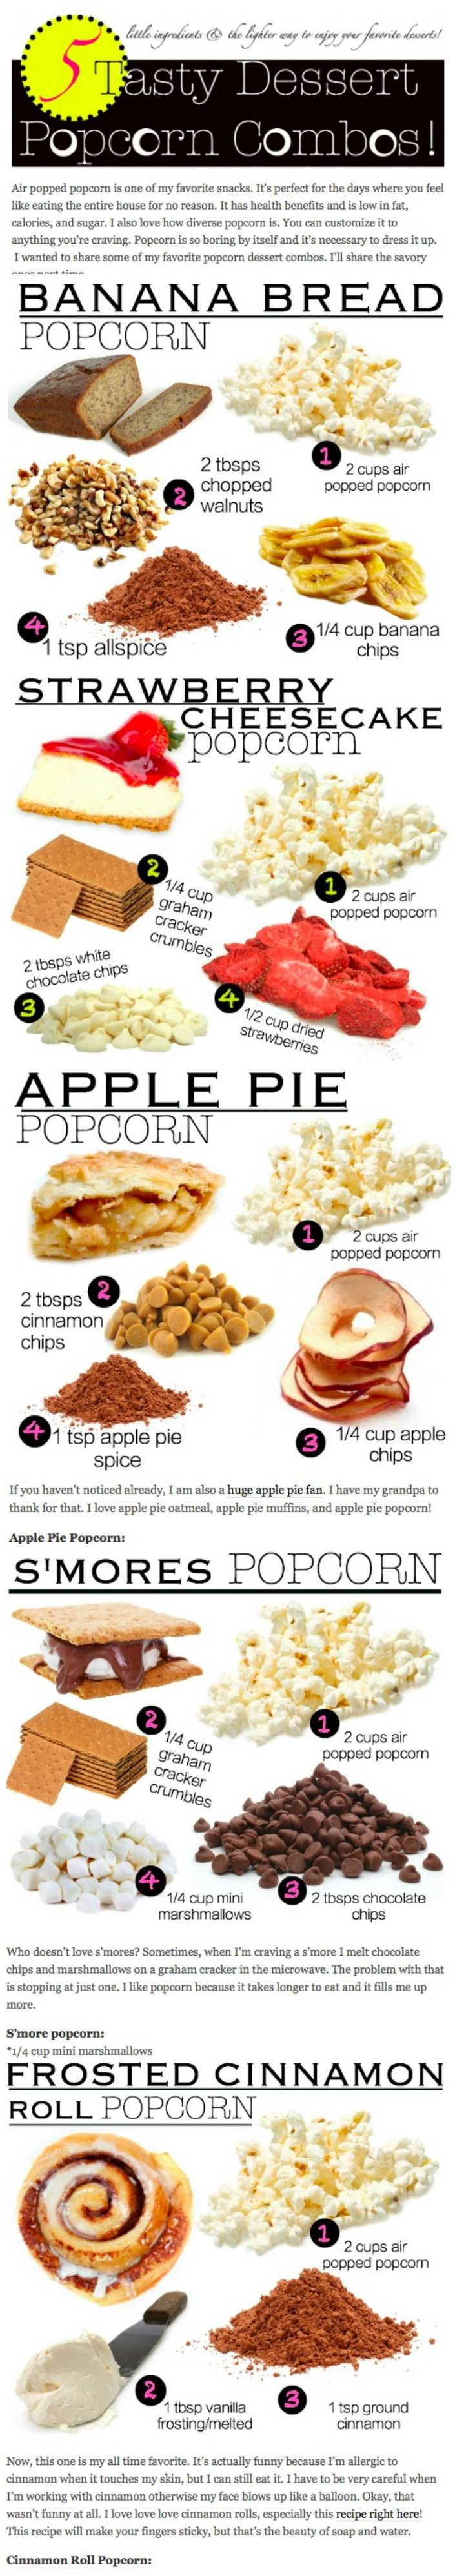 Five great popcorn combos to light up already delicious recipes! #popcorn #healthyeating